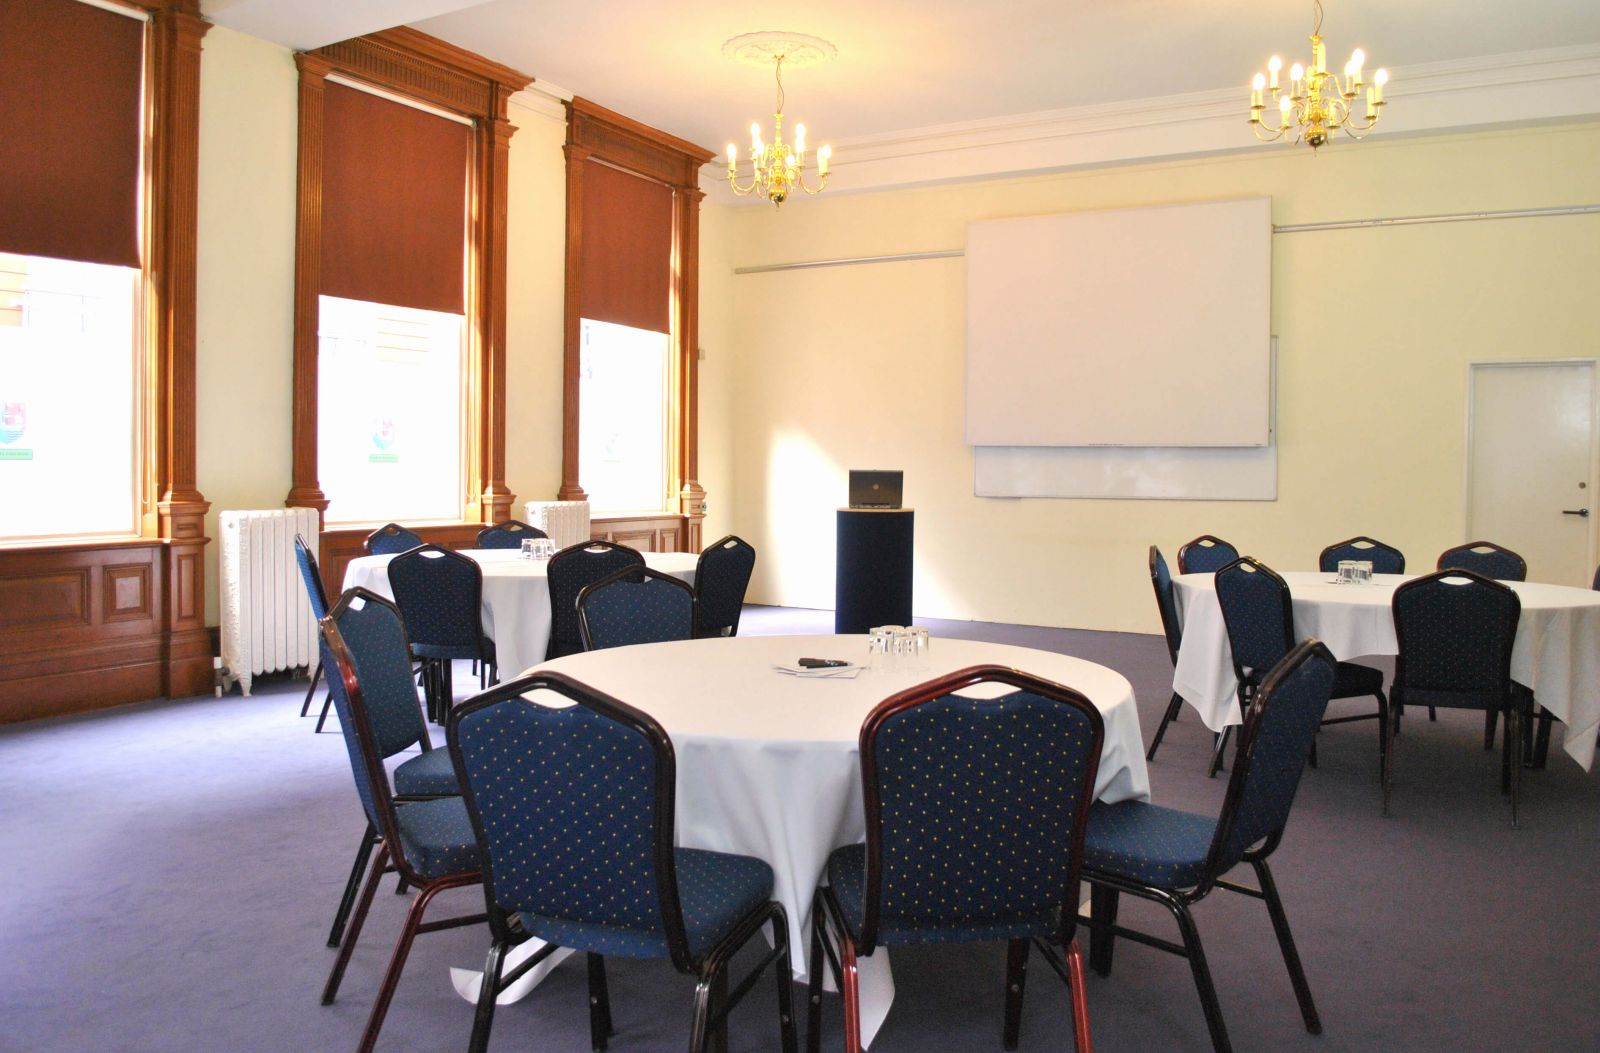 For Just 0, You Can Book The Brunel Room At The Armada House In Armada